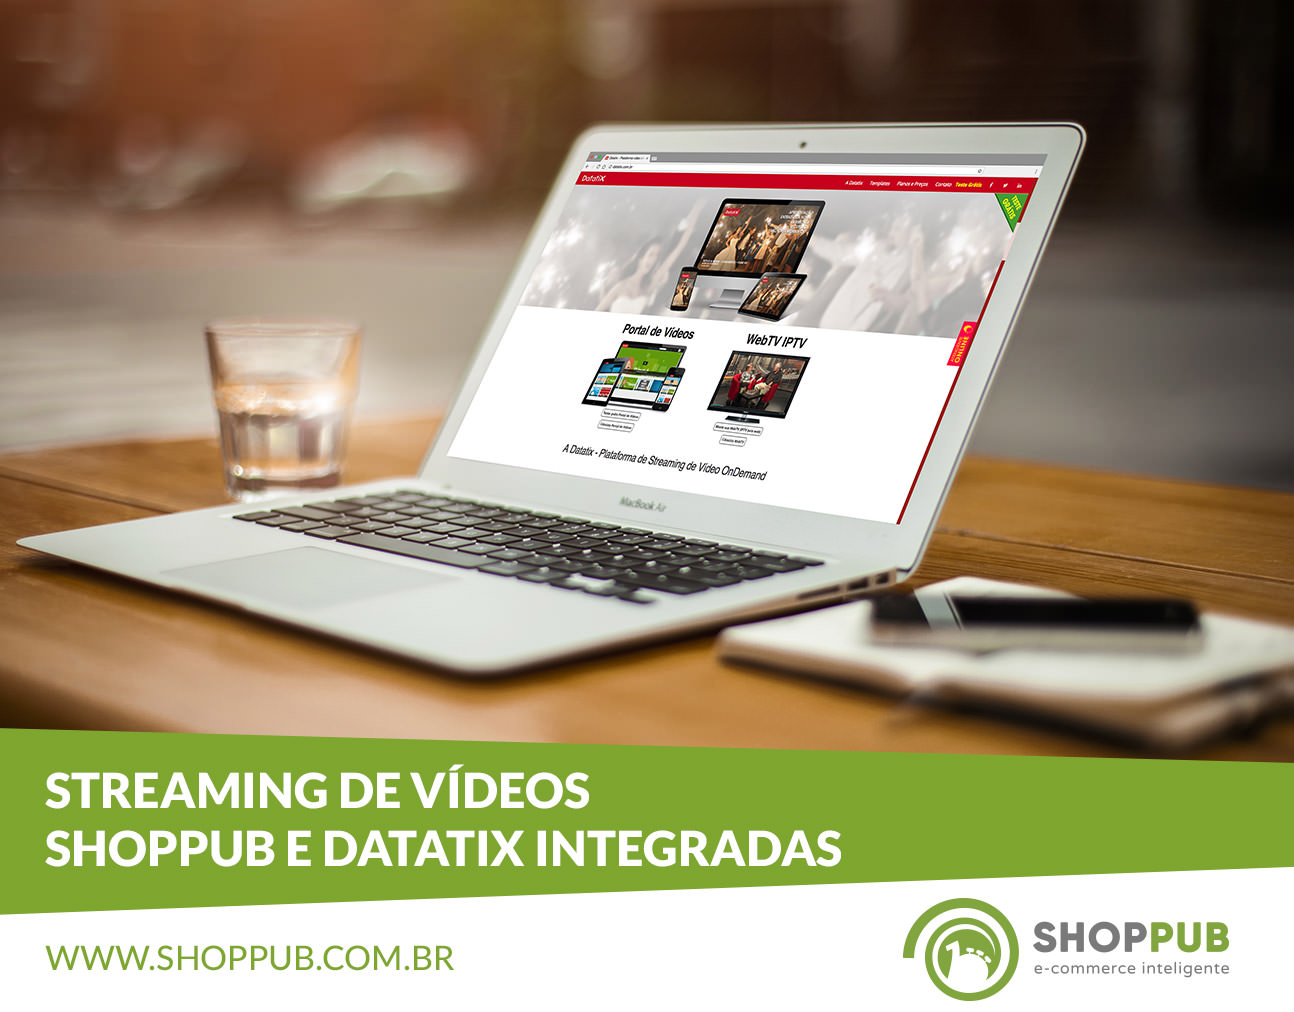 Streaming de vídeos – Shoppub e Datatix integradas